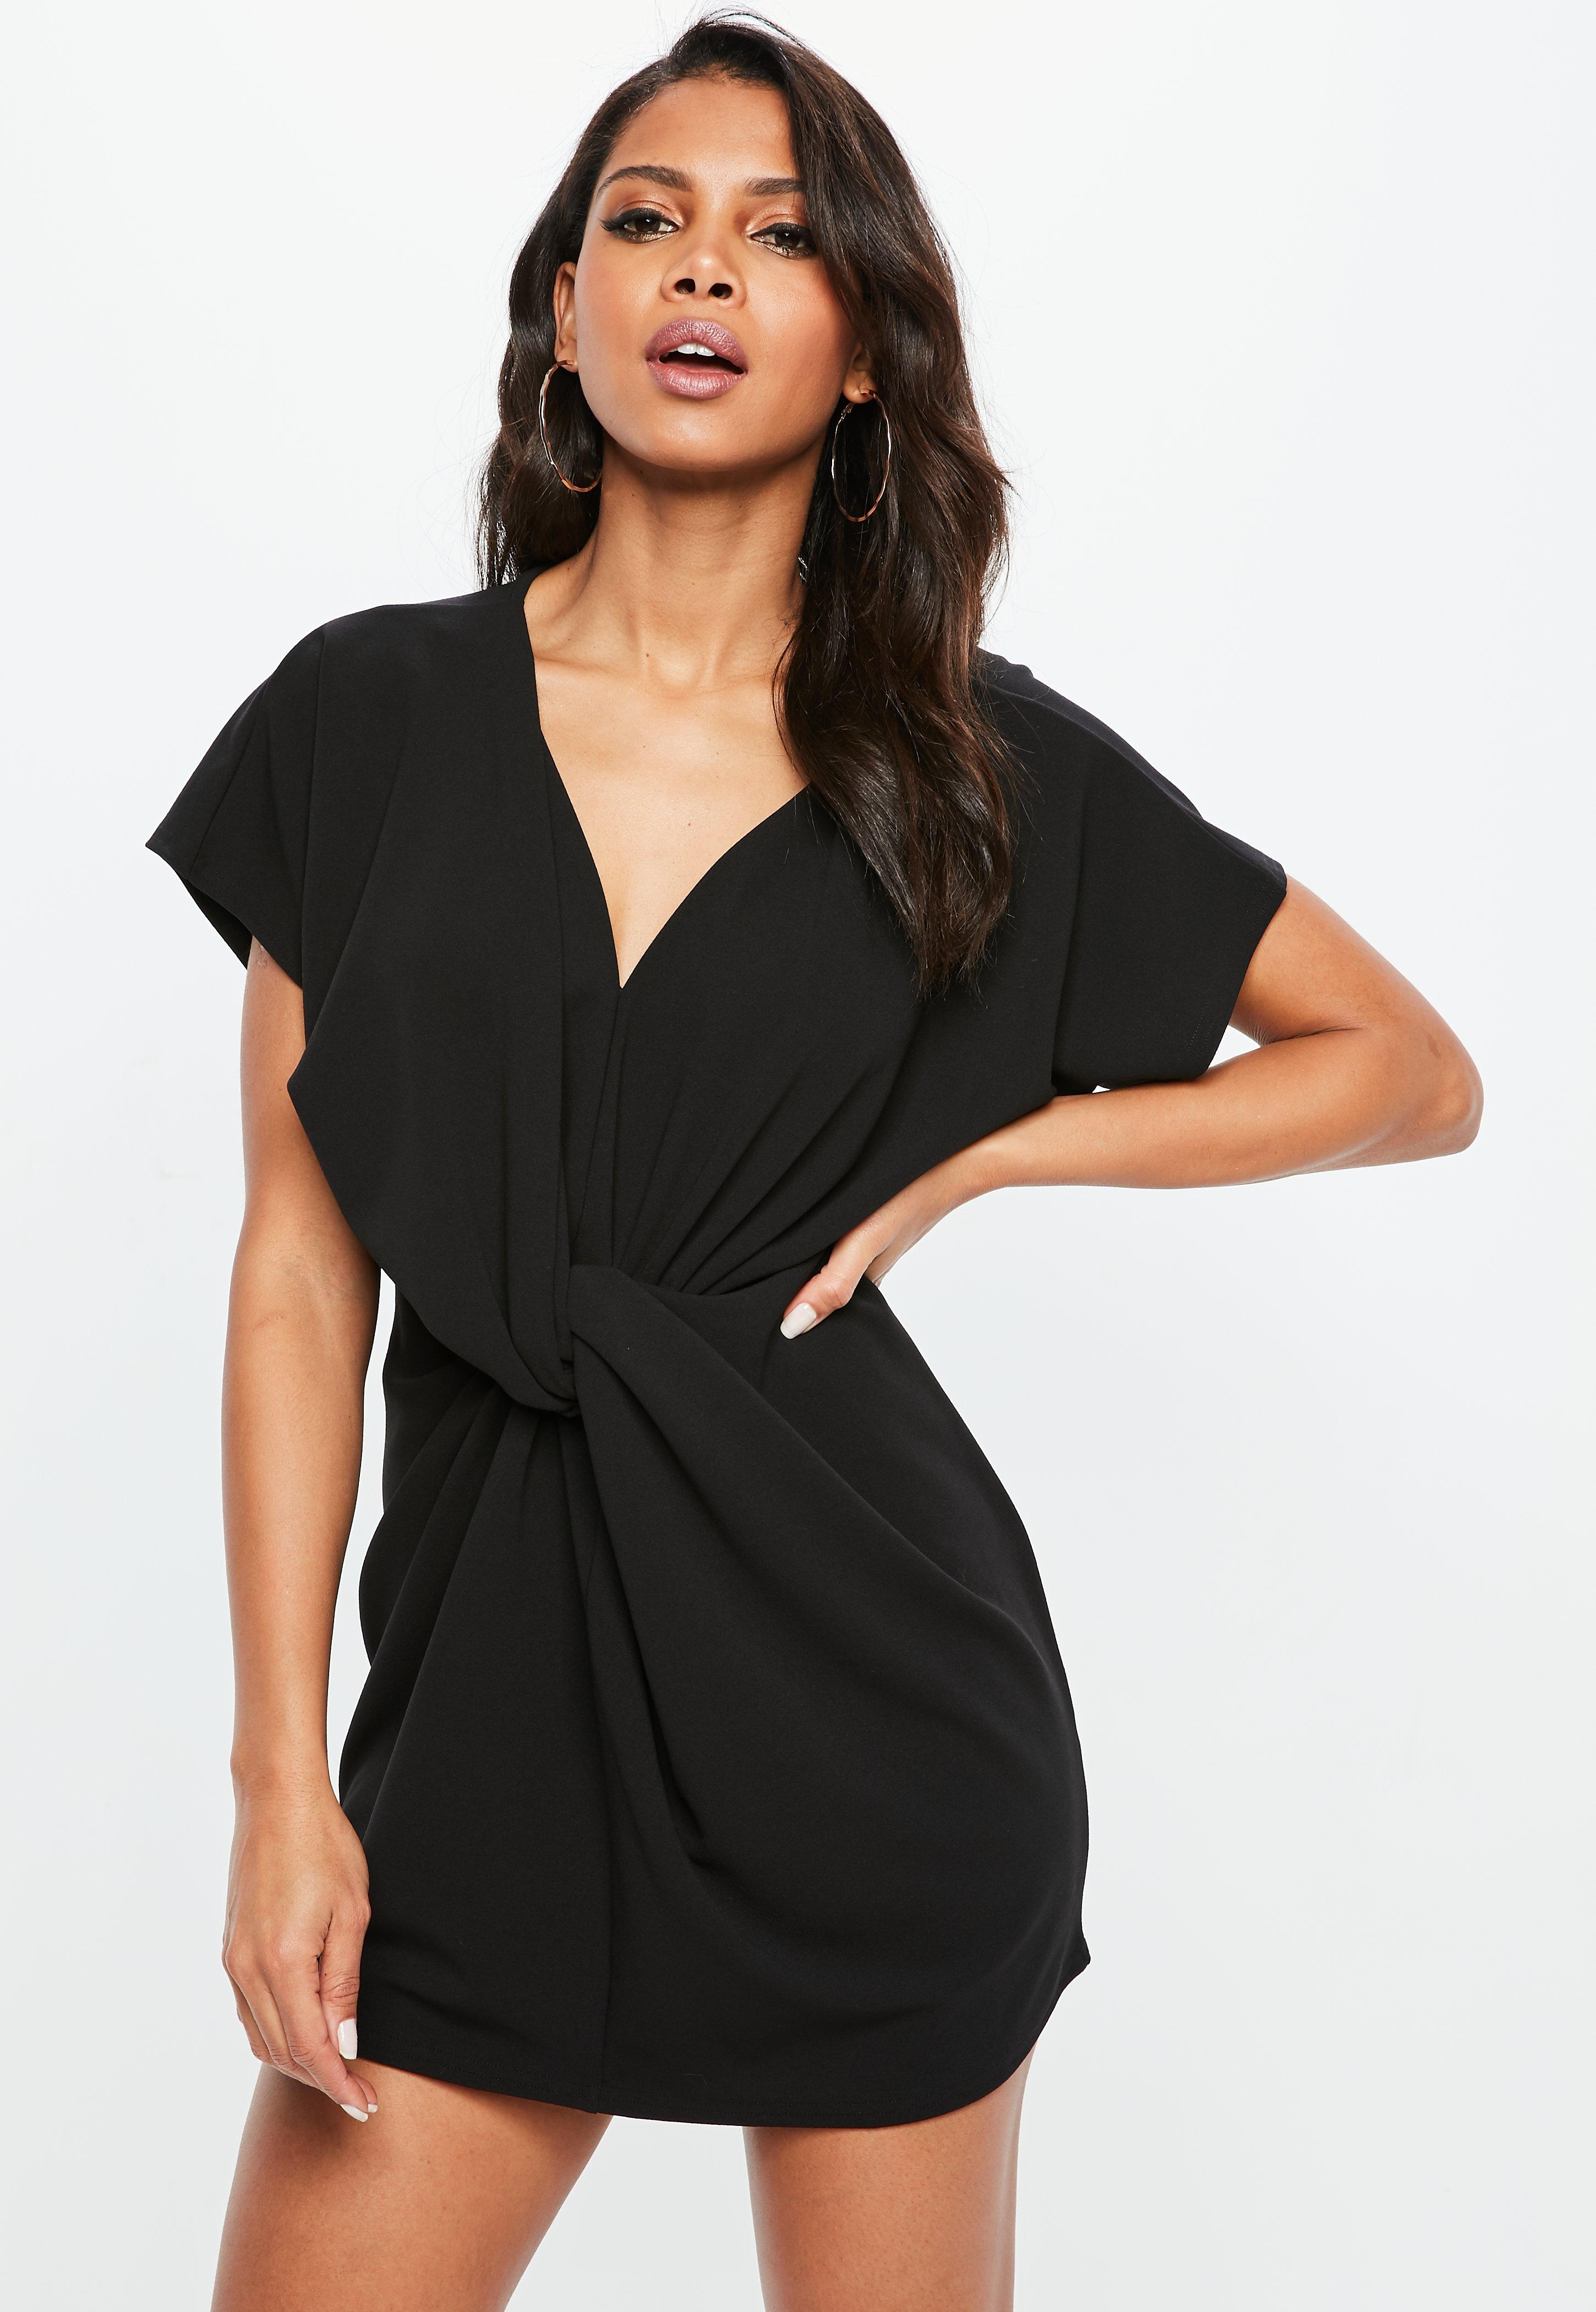 Formal Dresses | Evening Gowns from $12 - Missguided